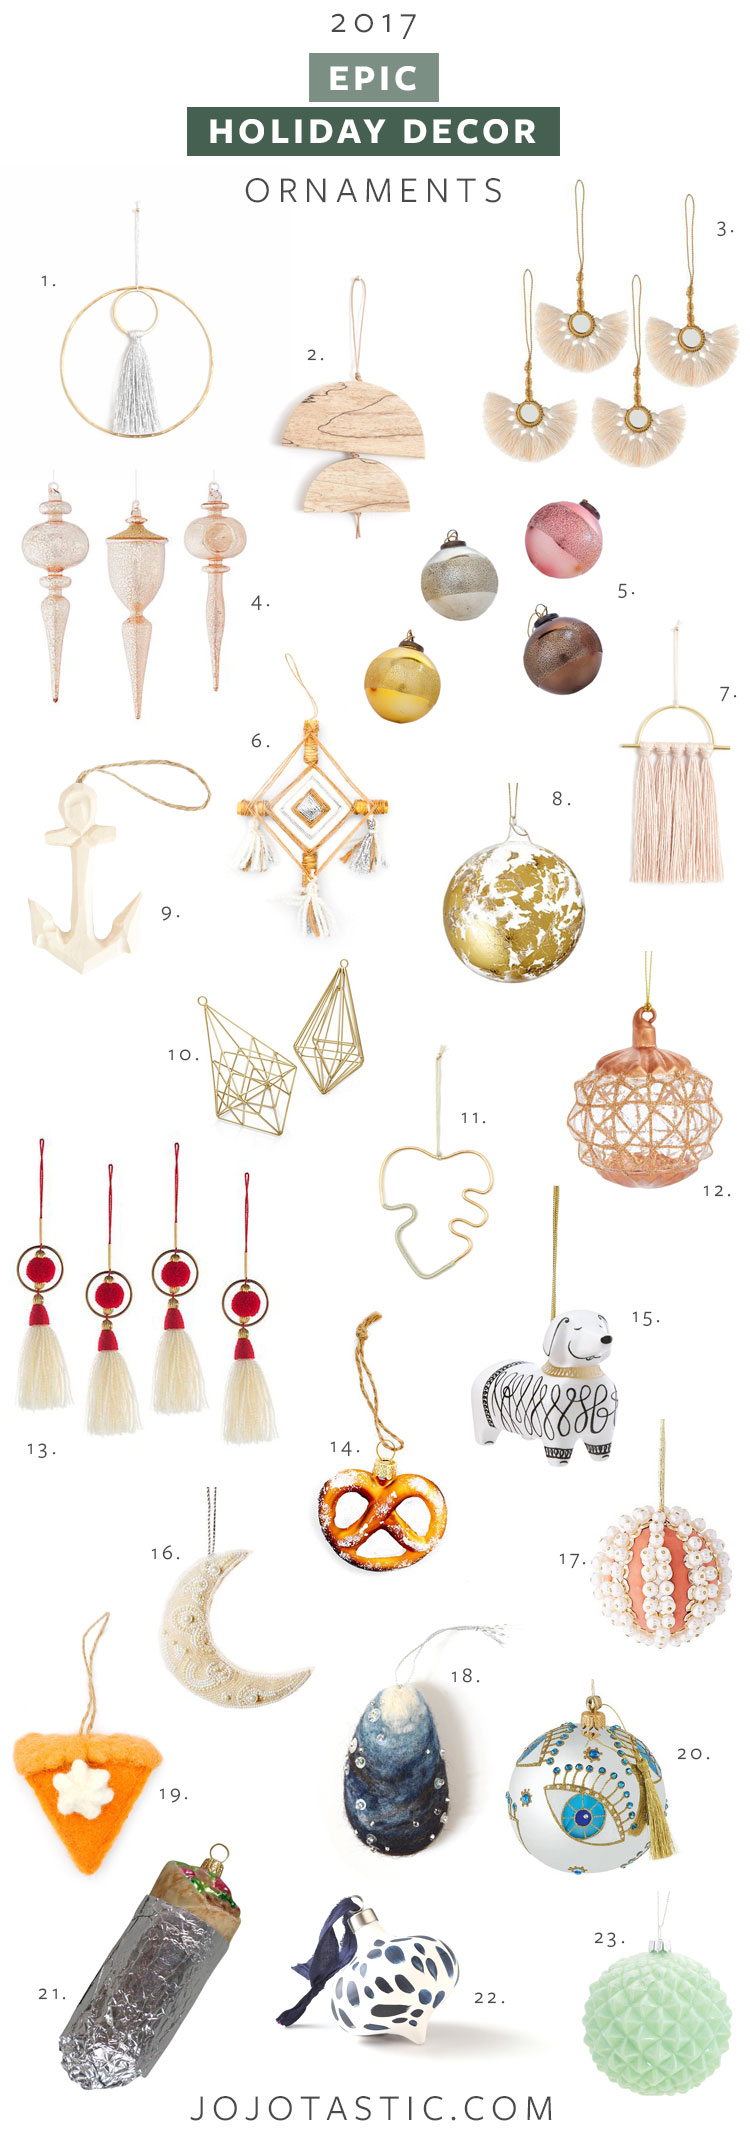 my epic holiday decor round up: ornaments, tree toppers, & lights. get the full source list on jojotastic.com #christmas #christmasdecor